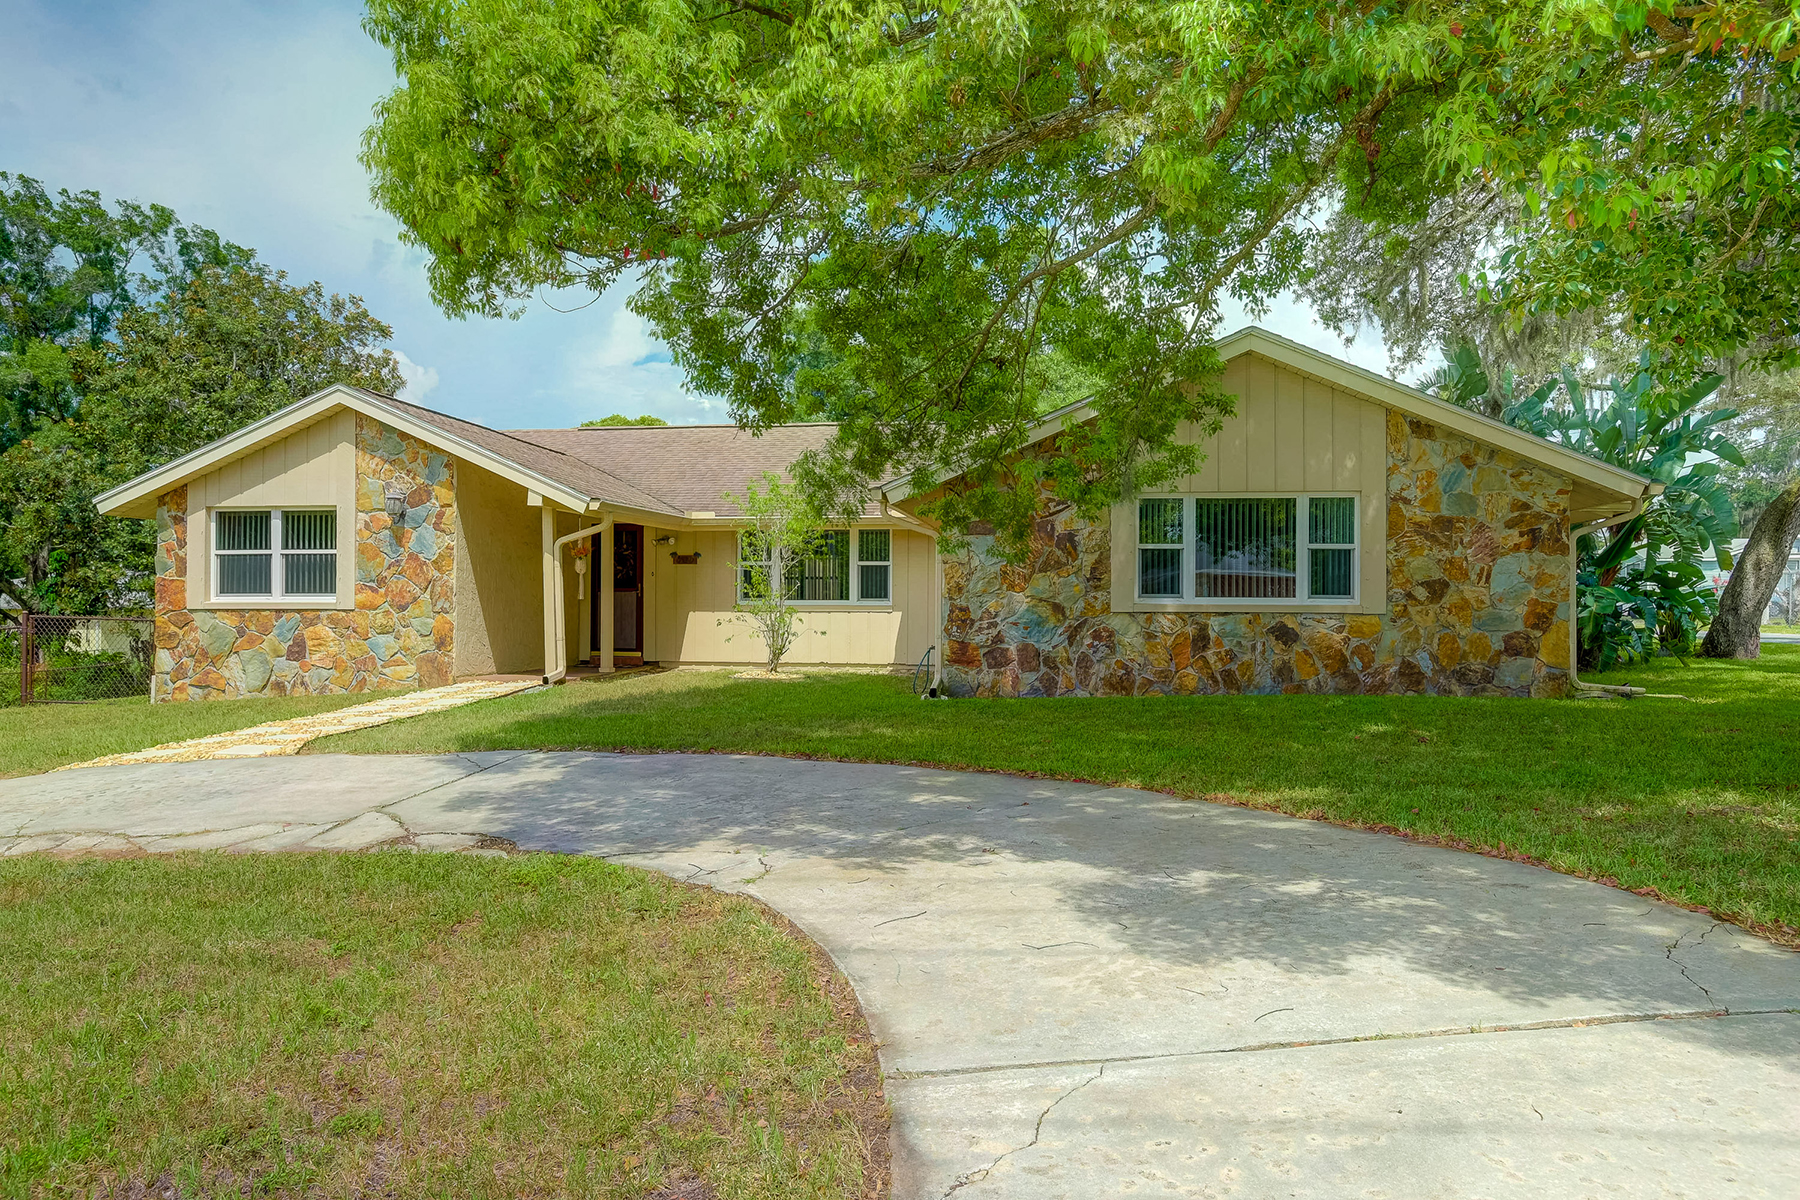 Single Family Homes for Active at 5529 Cook St New Port Richey, Florida 34652 United States